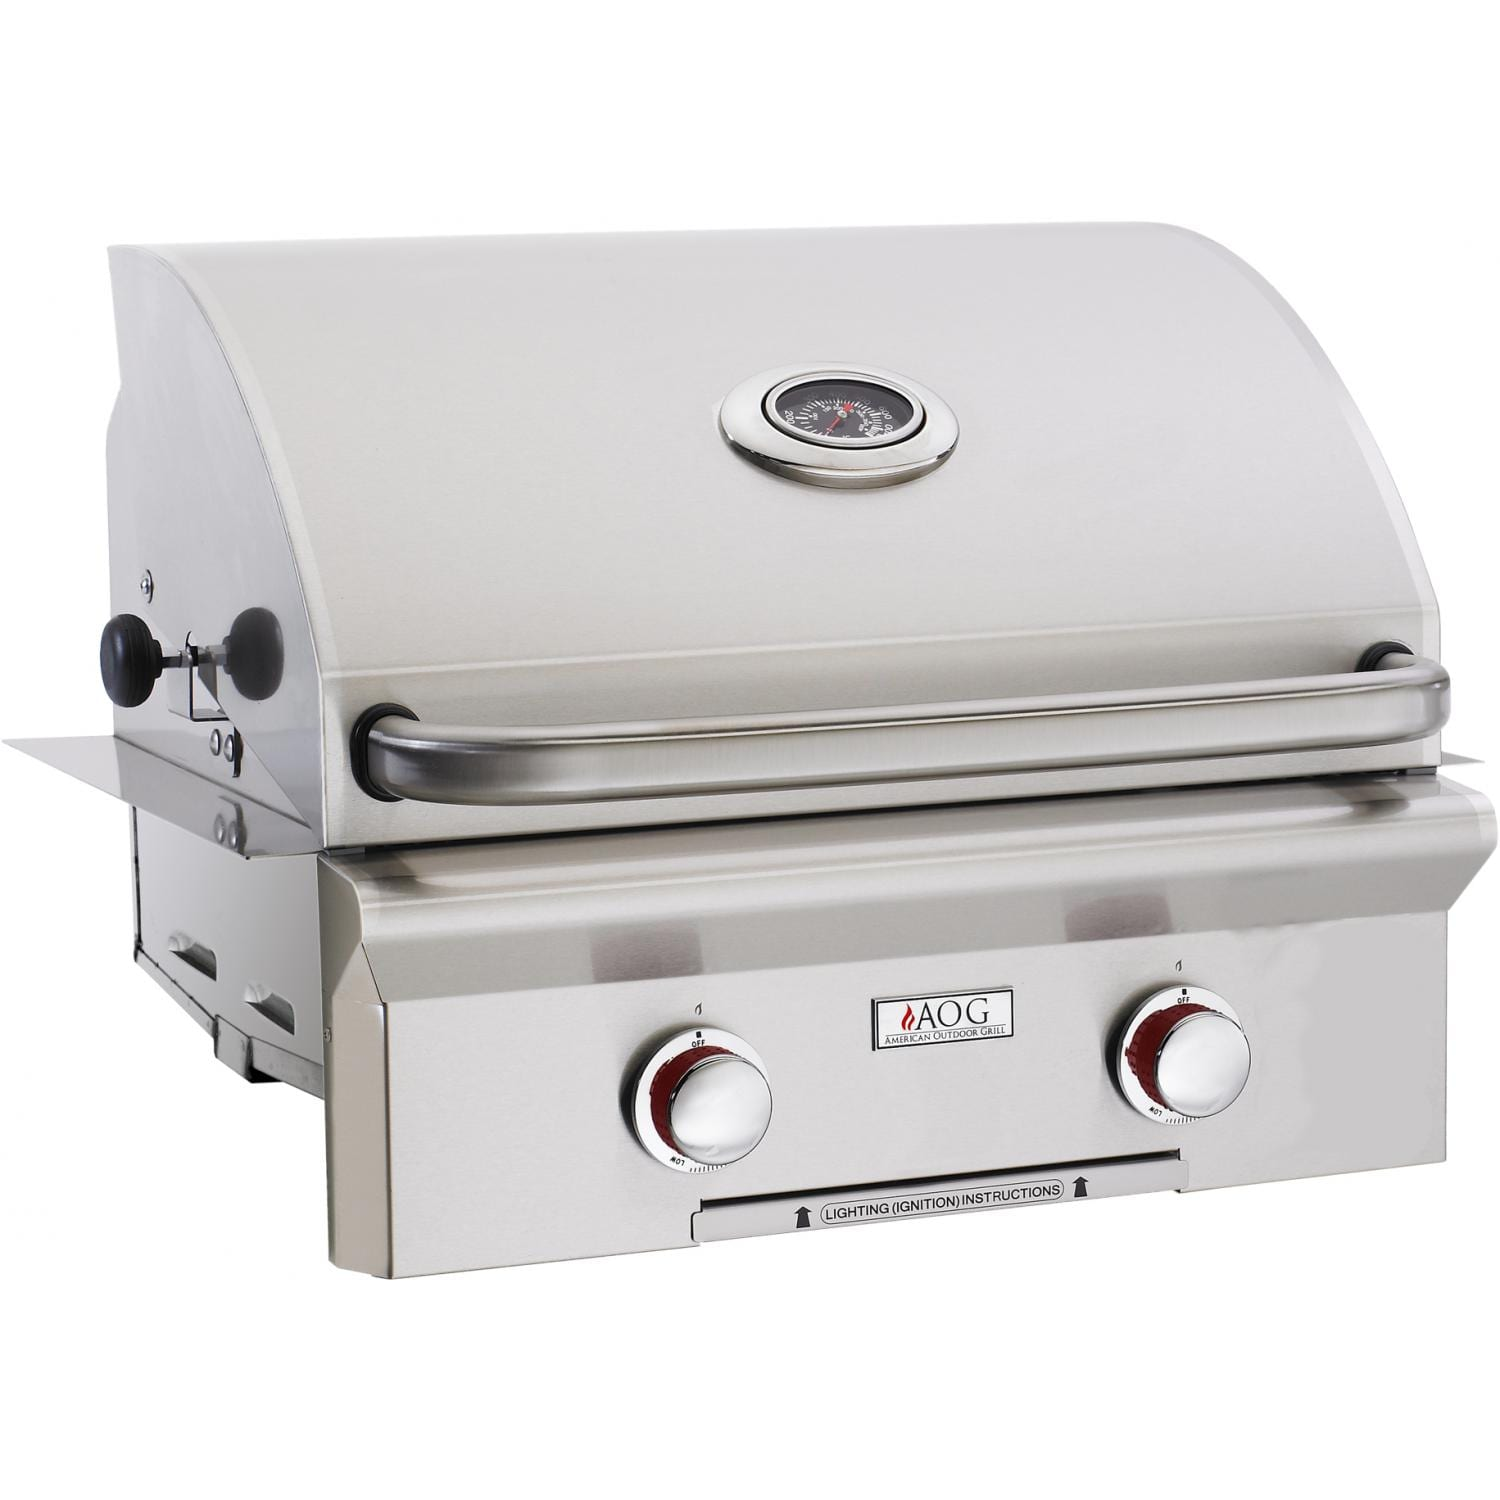 American Outdoor Grill T-Series 24-Inch 2-Burner Built-In Propane Gas Grill - 24PBT-OOSP